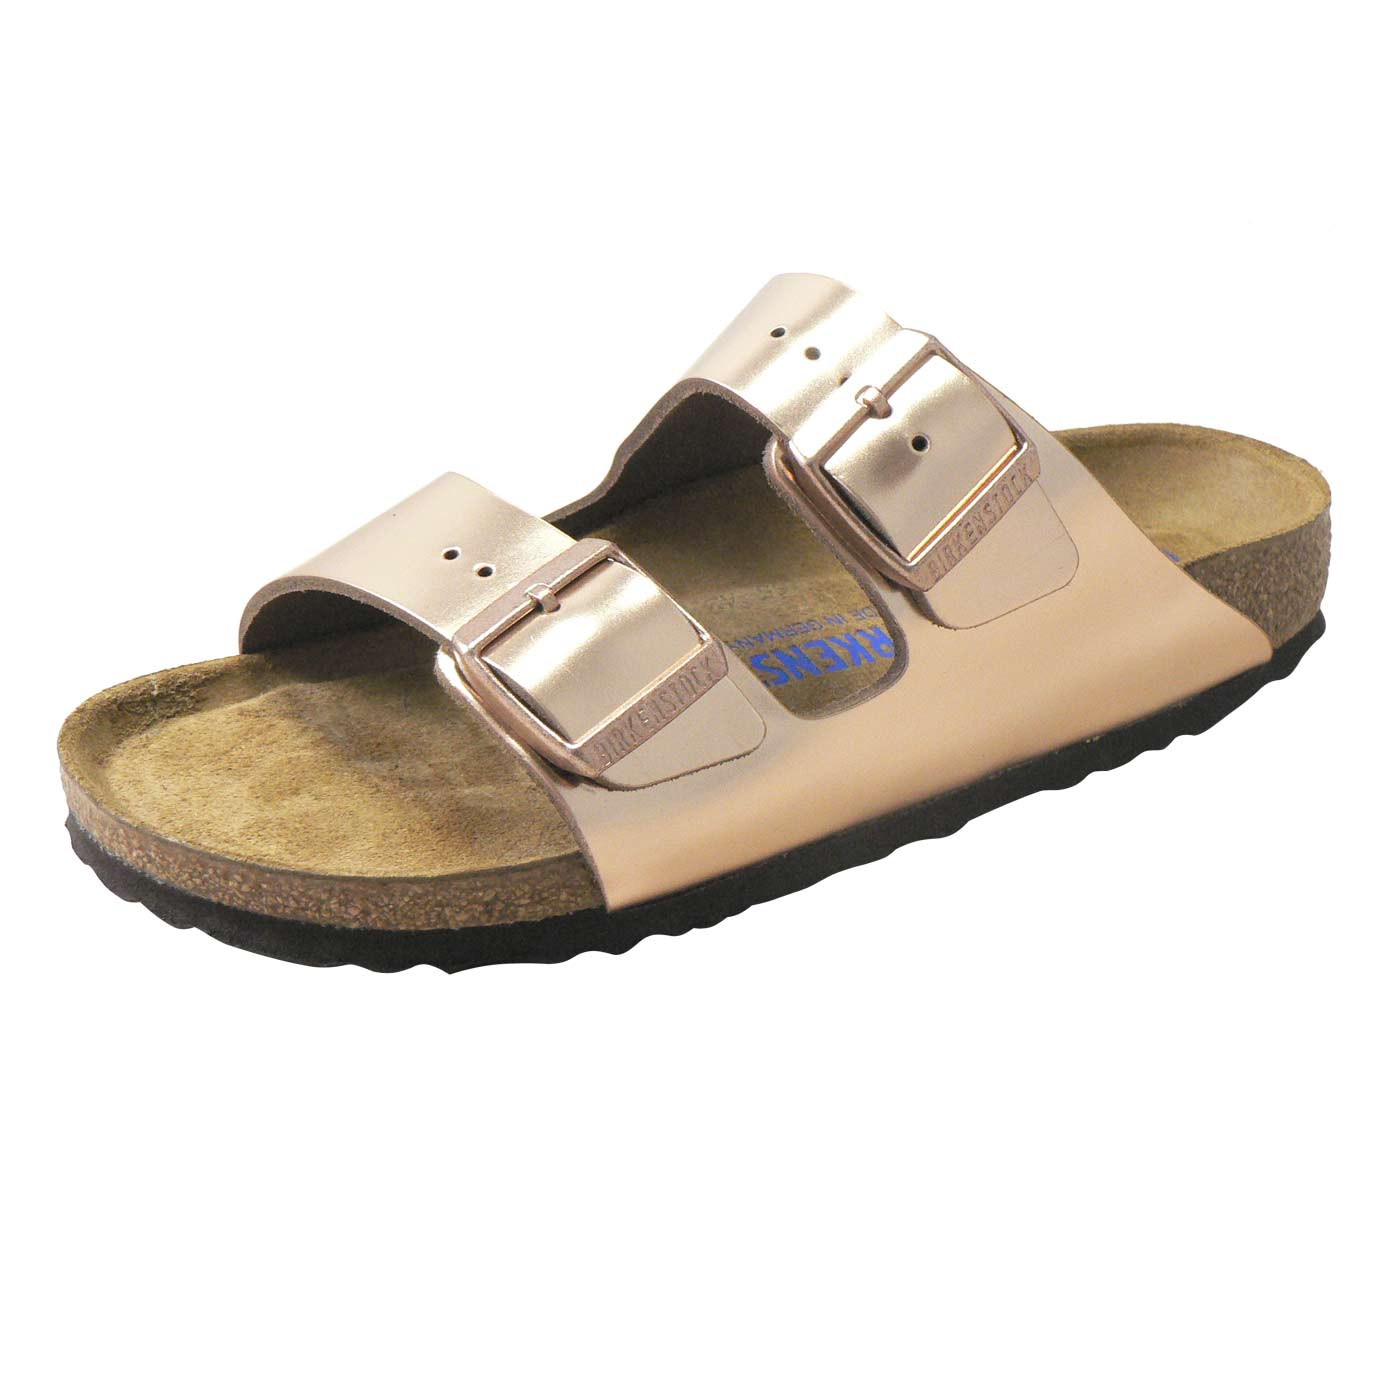 63a4a106b41c Arizona (Natural Leather   Soft Footbed) (NARROW FIT) - Metallic ...